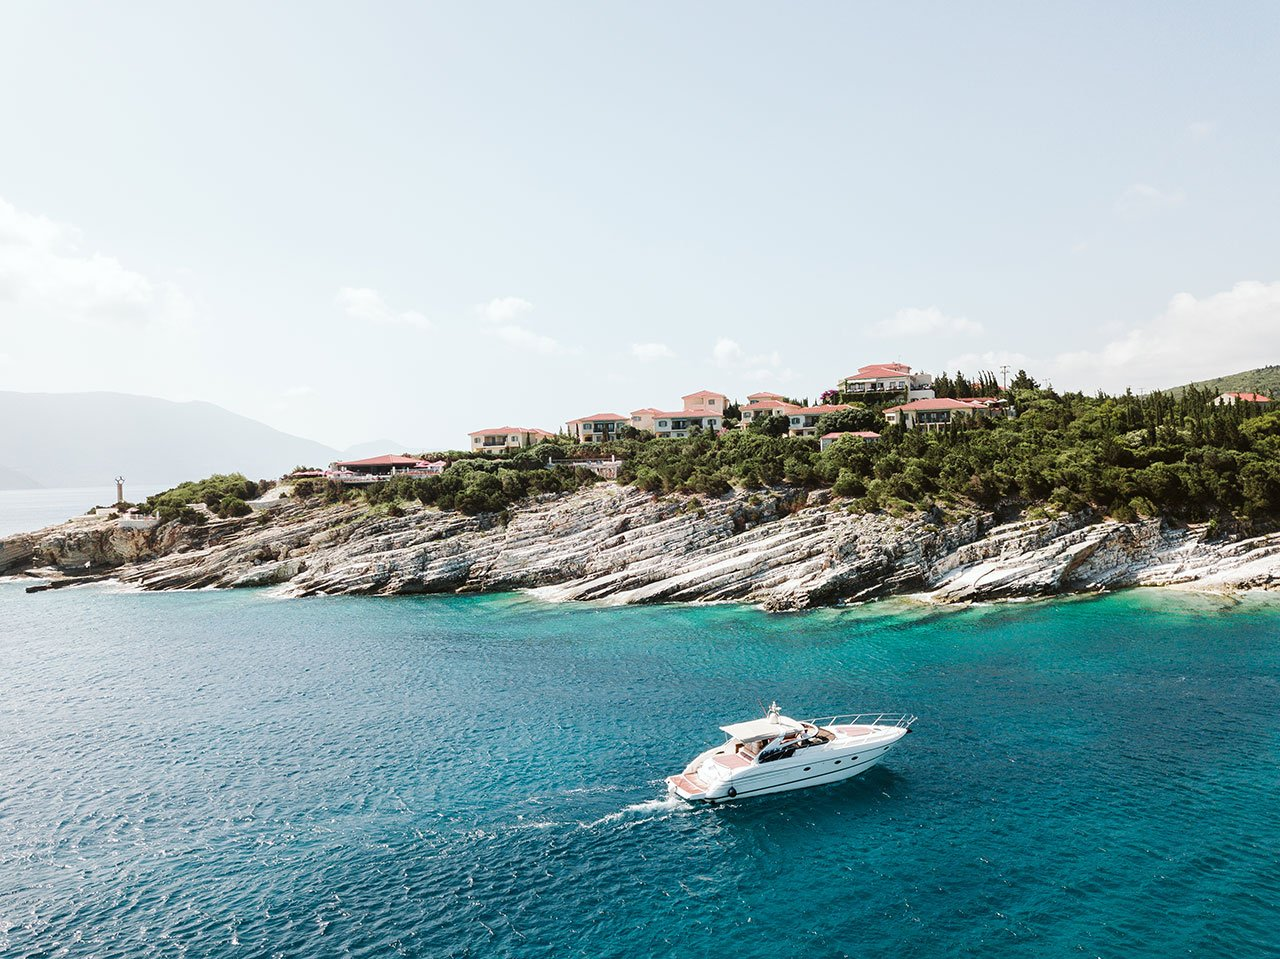 The Hotel overlooks the turquoise waters of Emblisi bay. © Emelisse Nature Resort | Fiskardo, Kefalonia, Greece.Photo by Dimitris Skigopoulos.